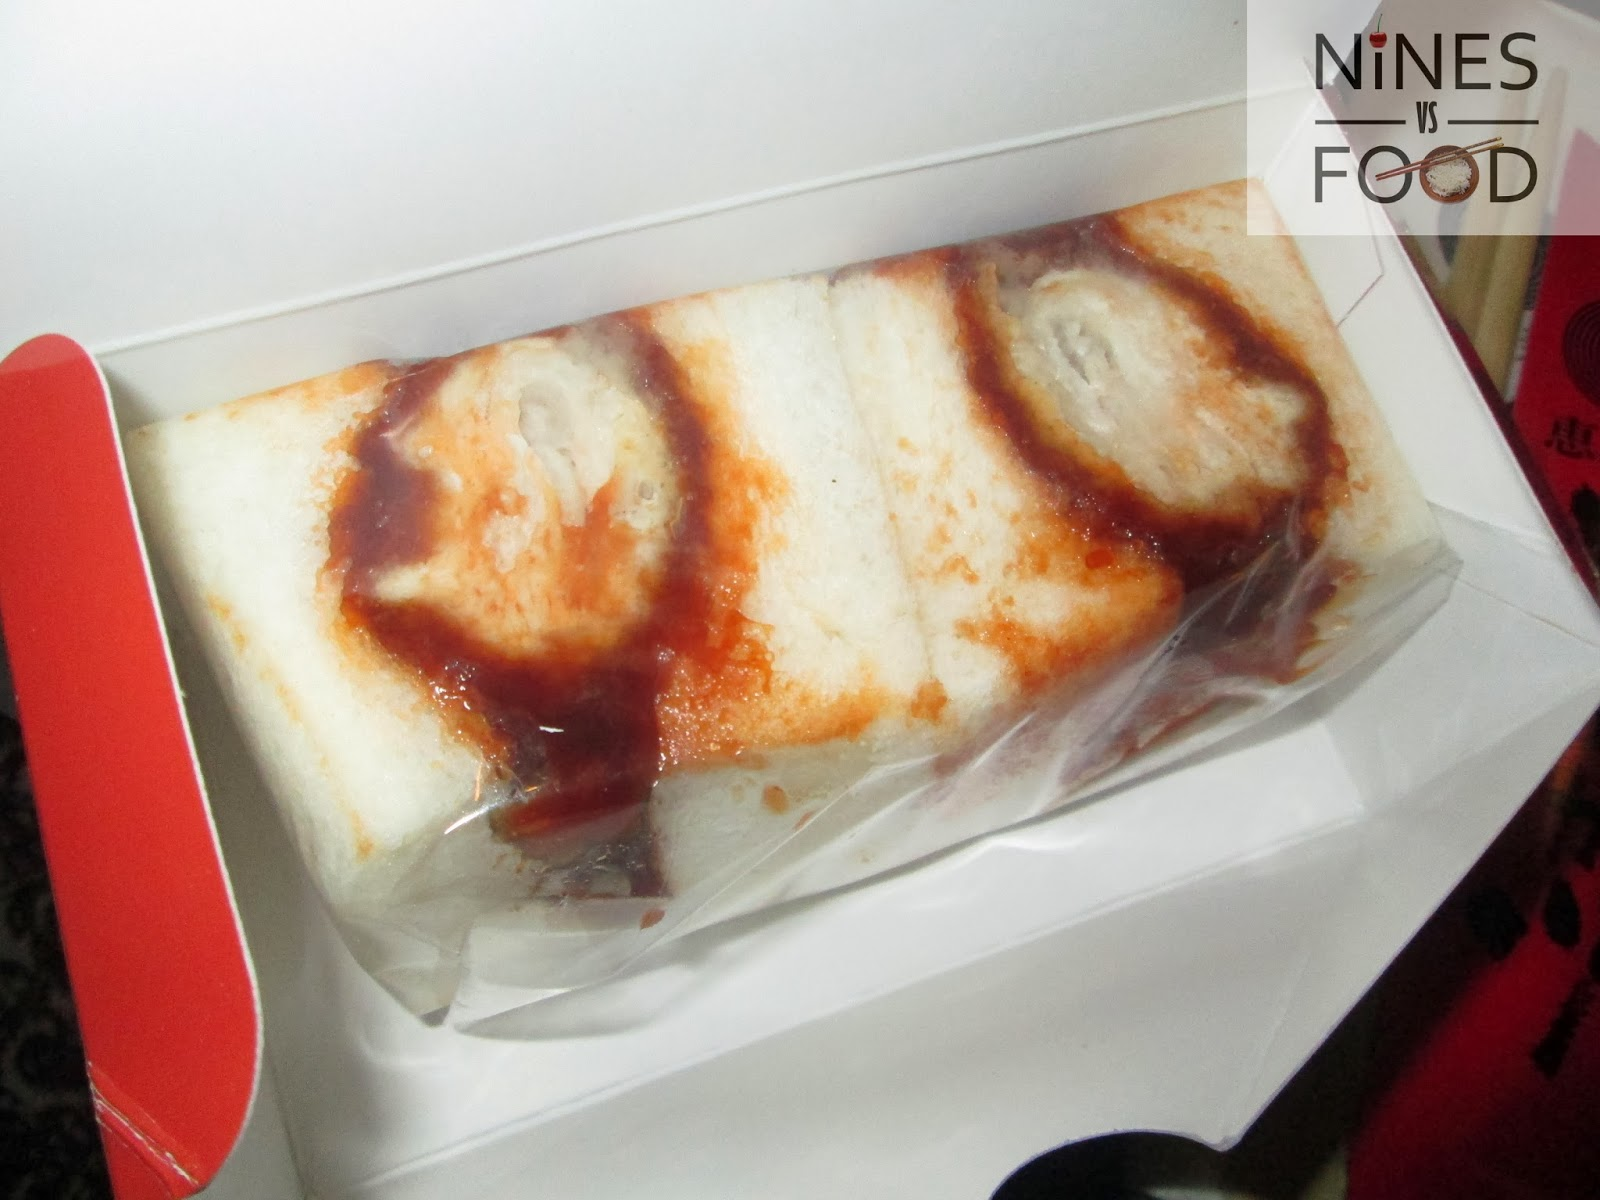 Nines vs. Food - Kimukatsu Manila Philippines-24.jpg